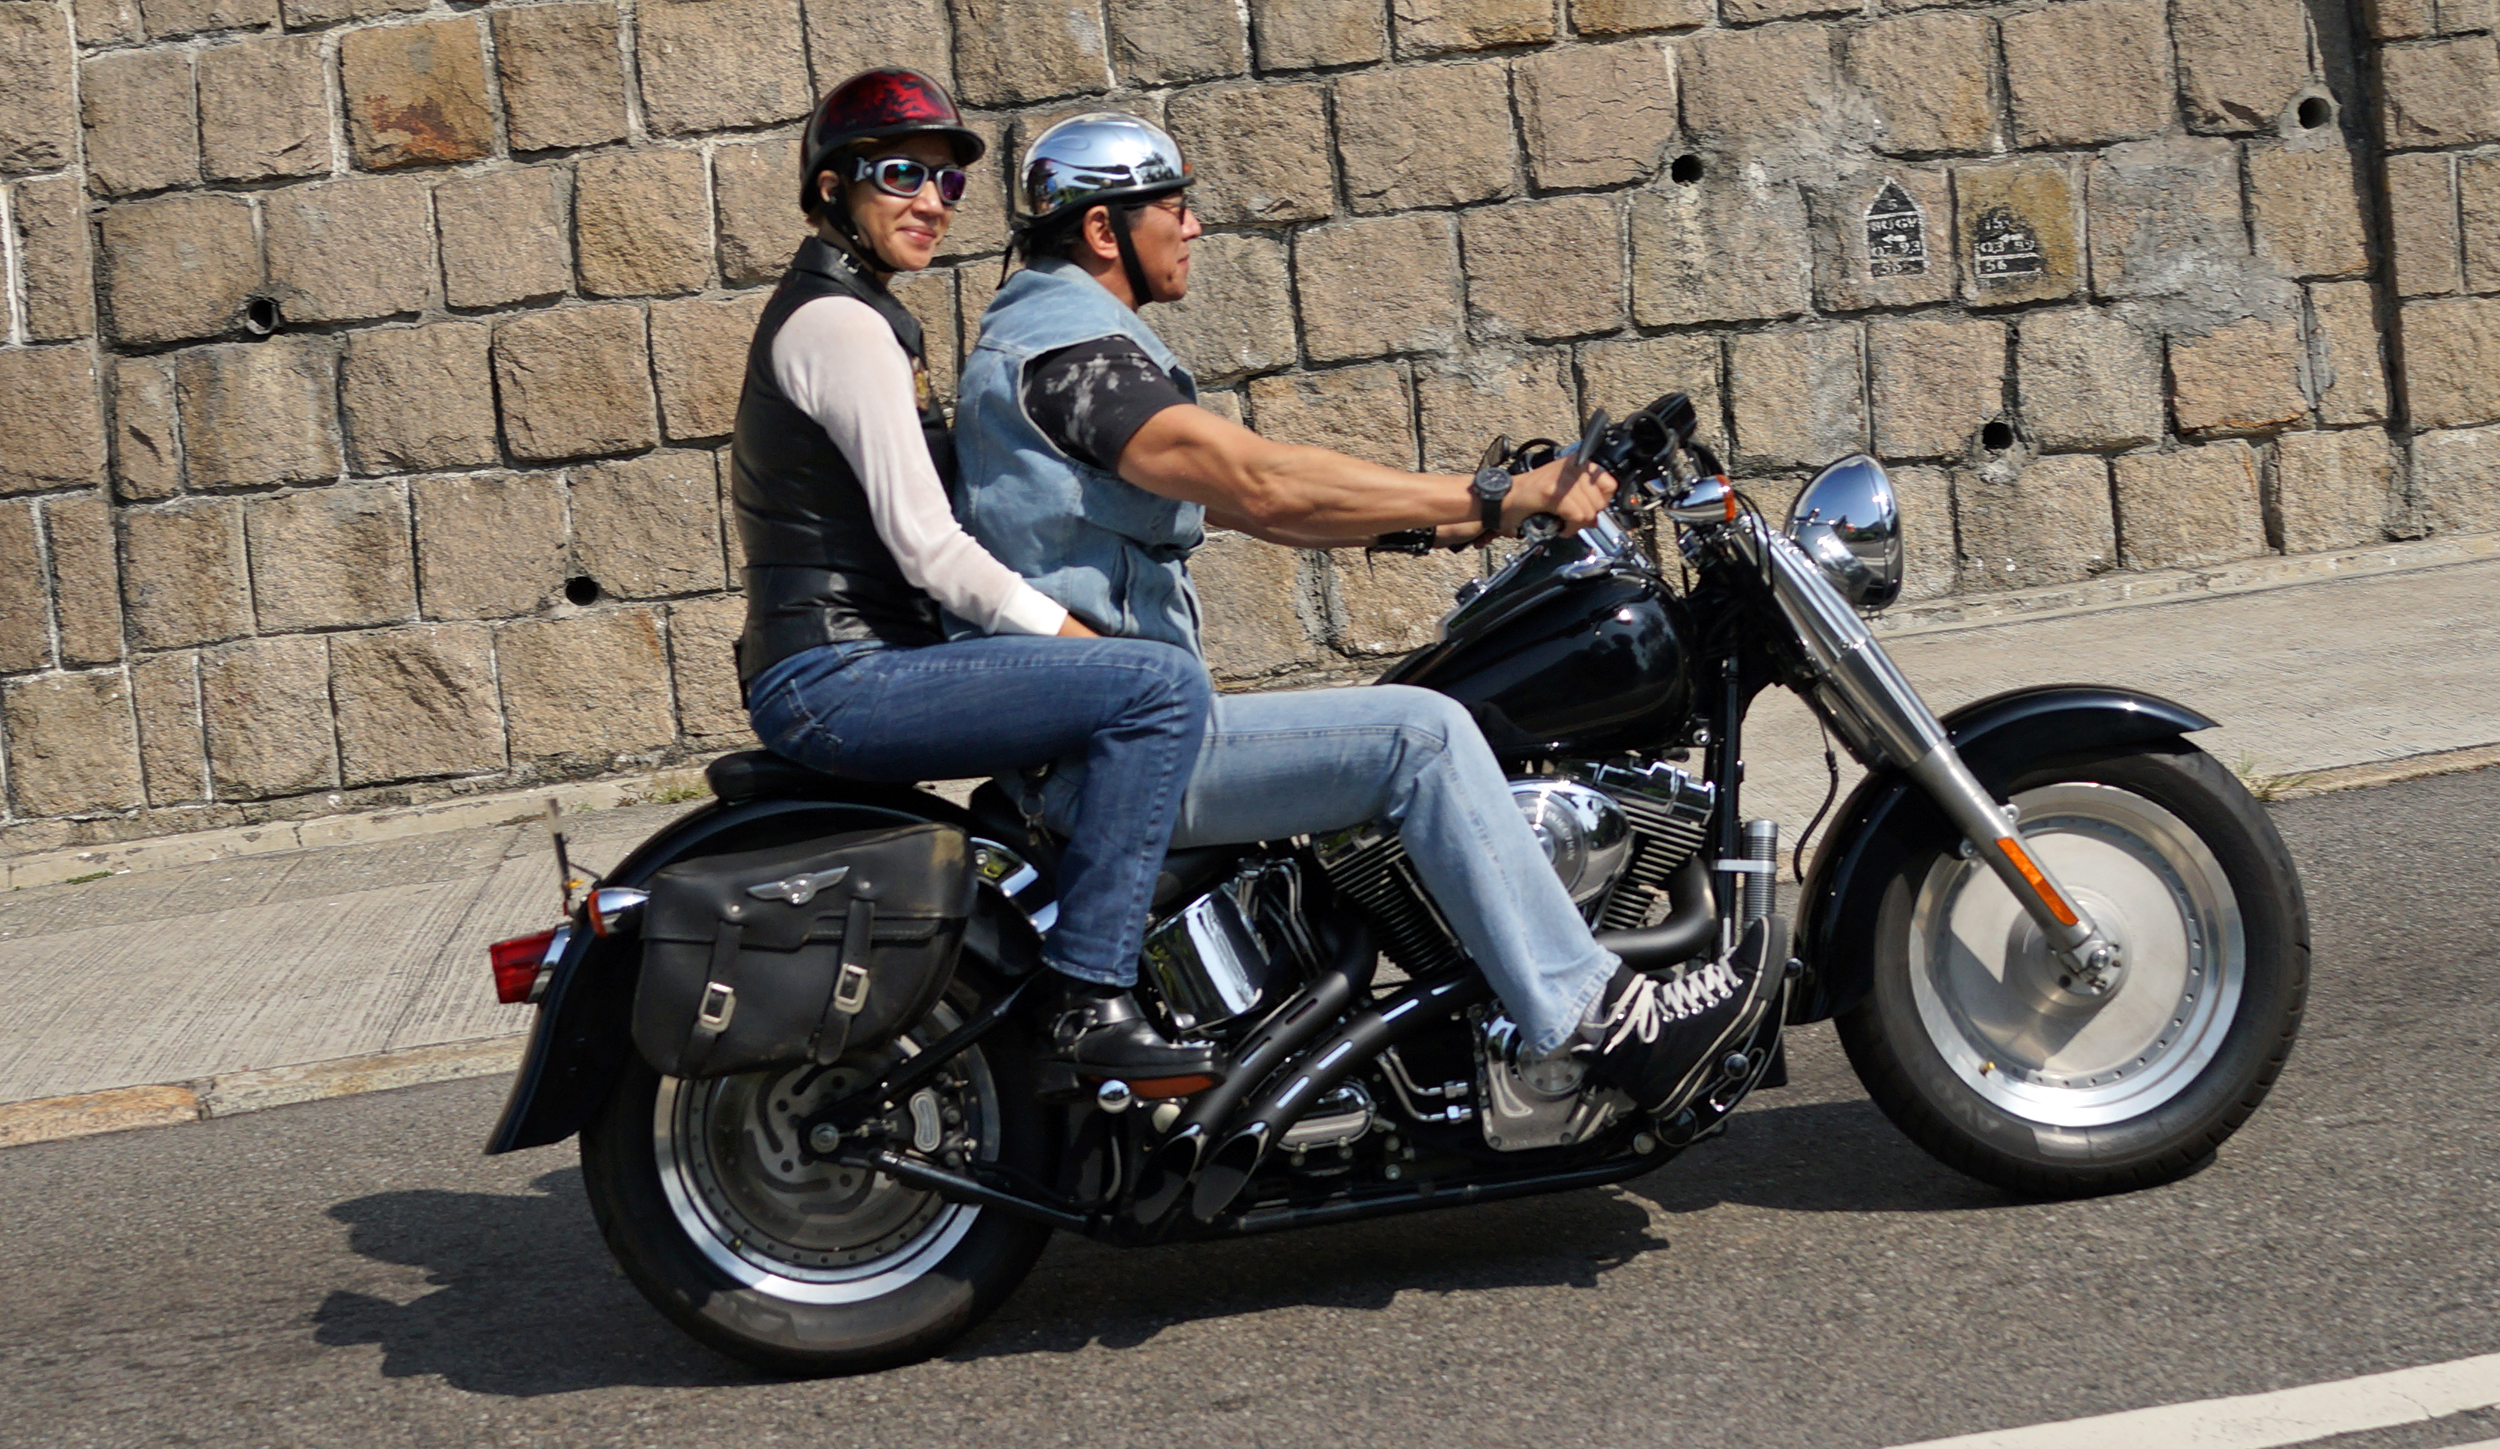 A cool biker chick on a cool Harley -